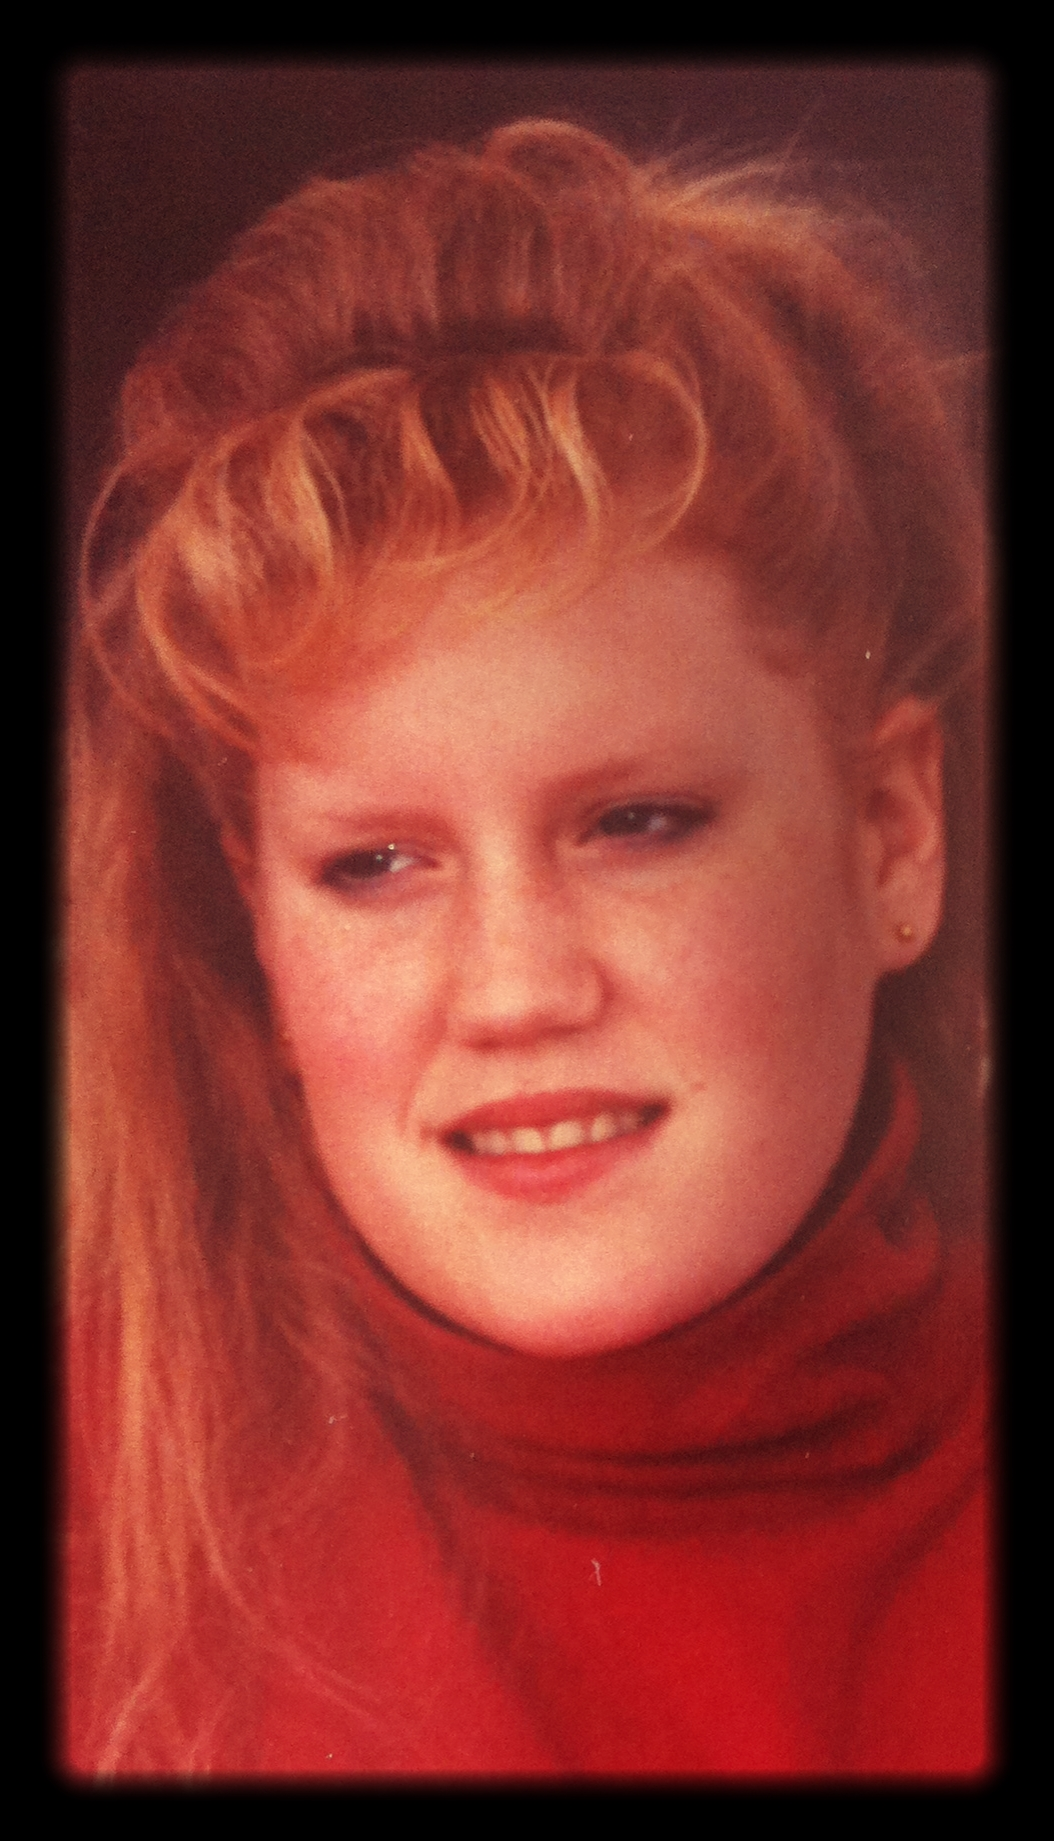 Lindsay_as_a_young_teen_with_the_best_hair_ever